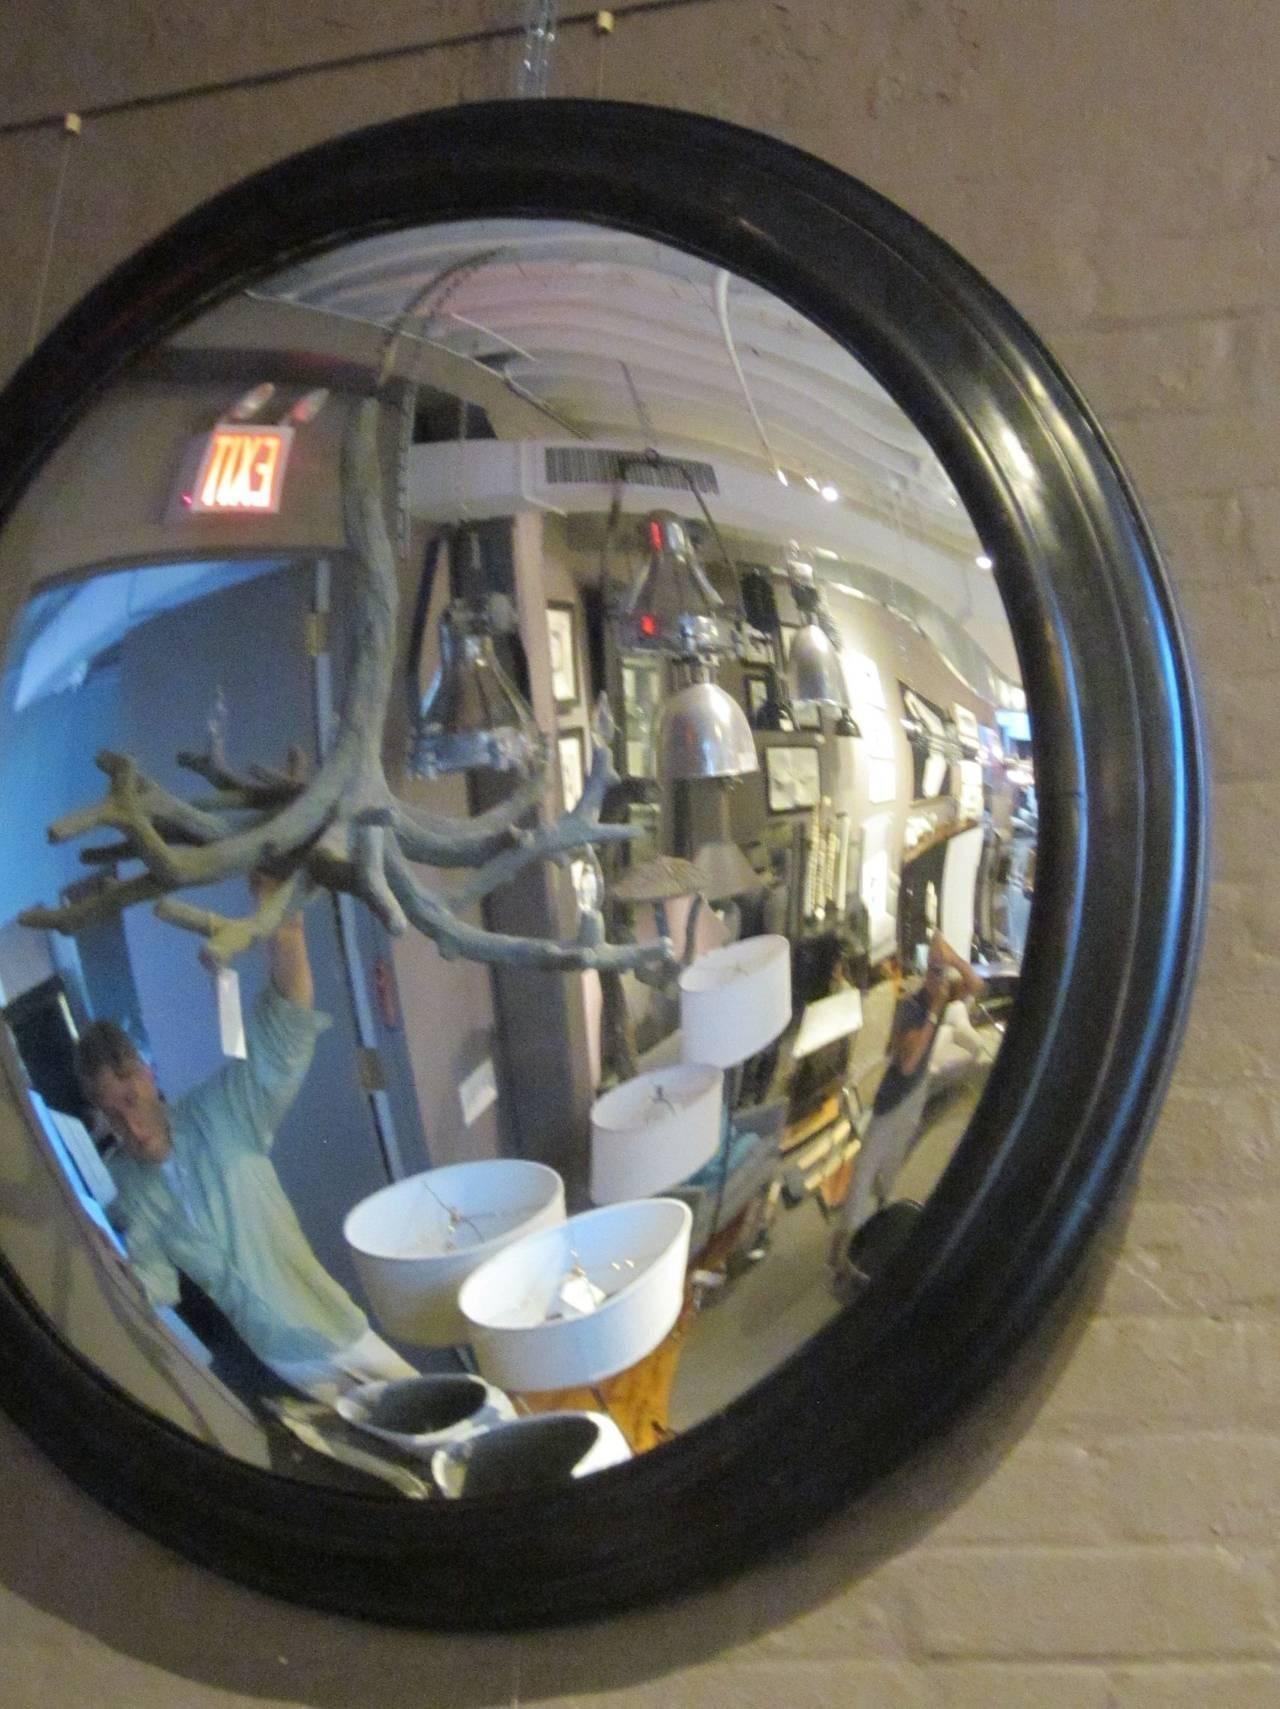 French Napoleon Iii Extra Large Round Convex Mirror In Black Frame Intended For Large Round Black Mirror (Image 6 of 20)